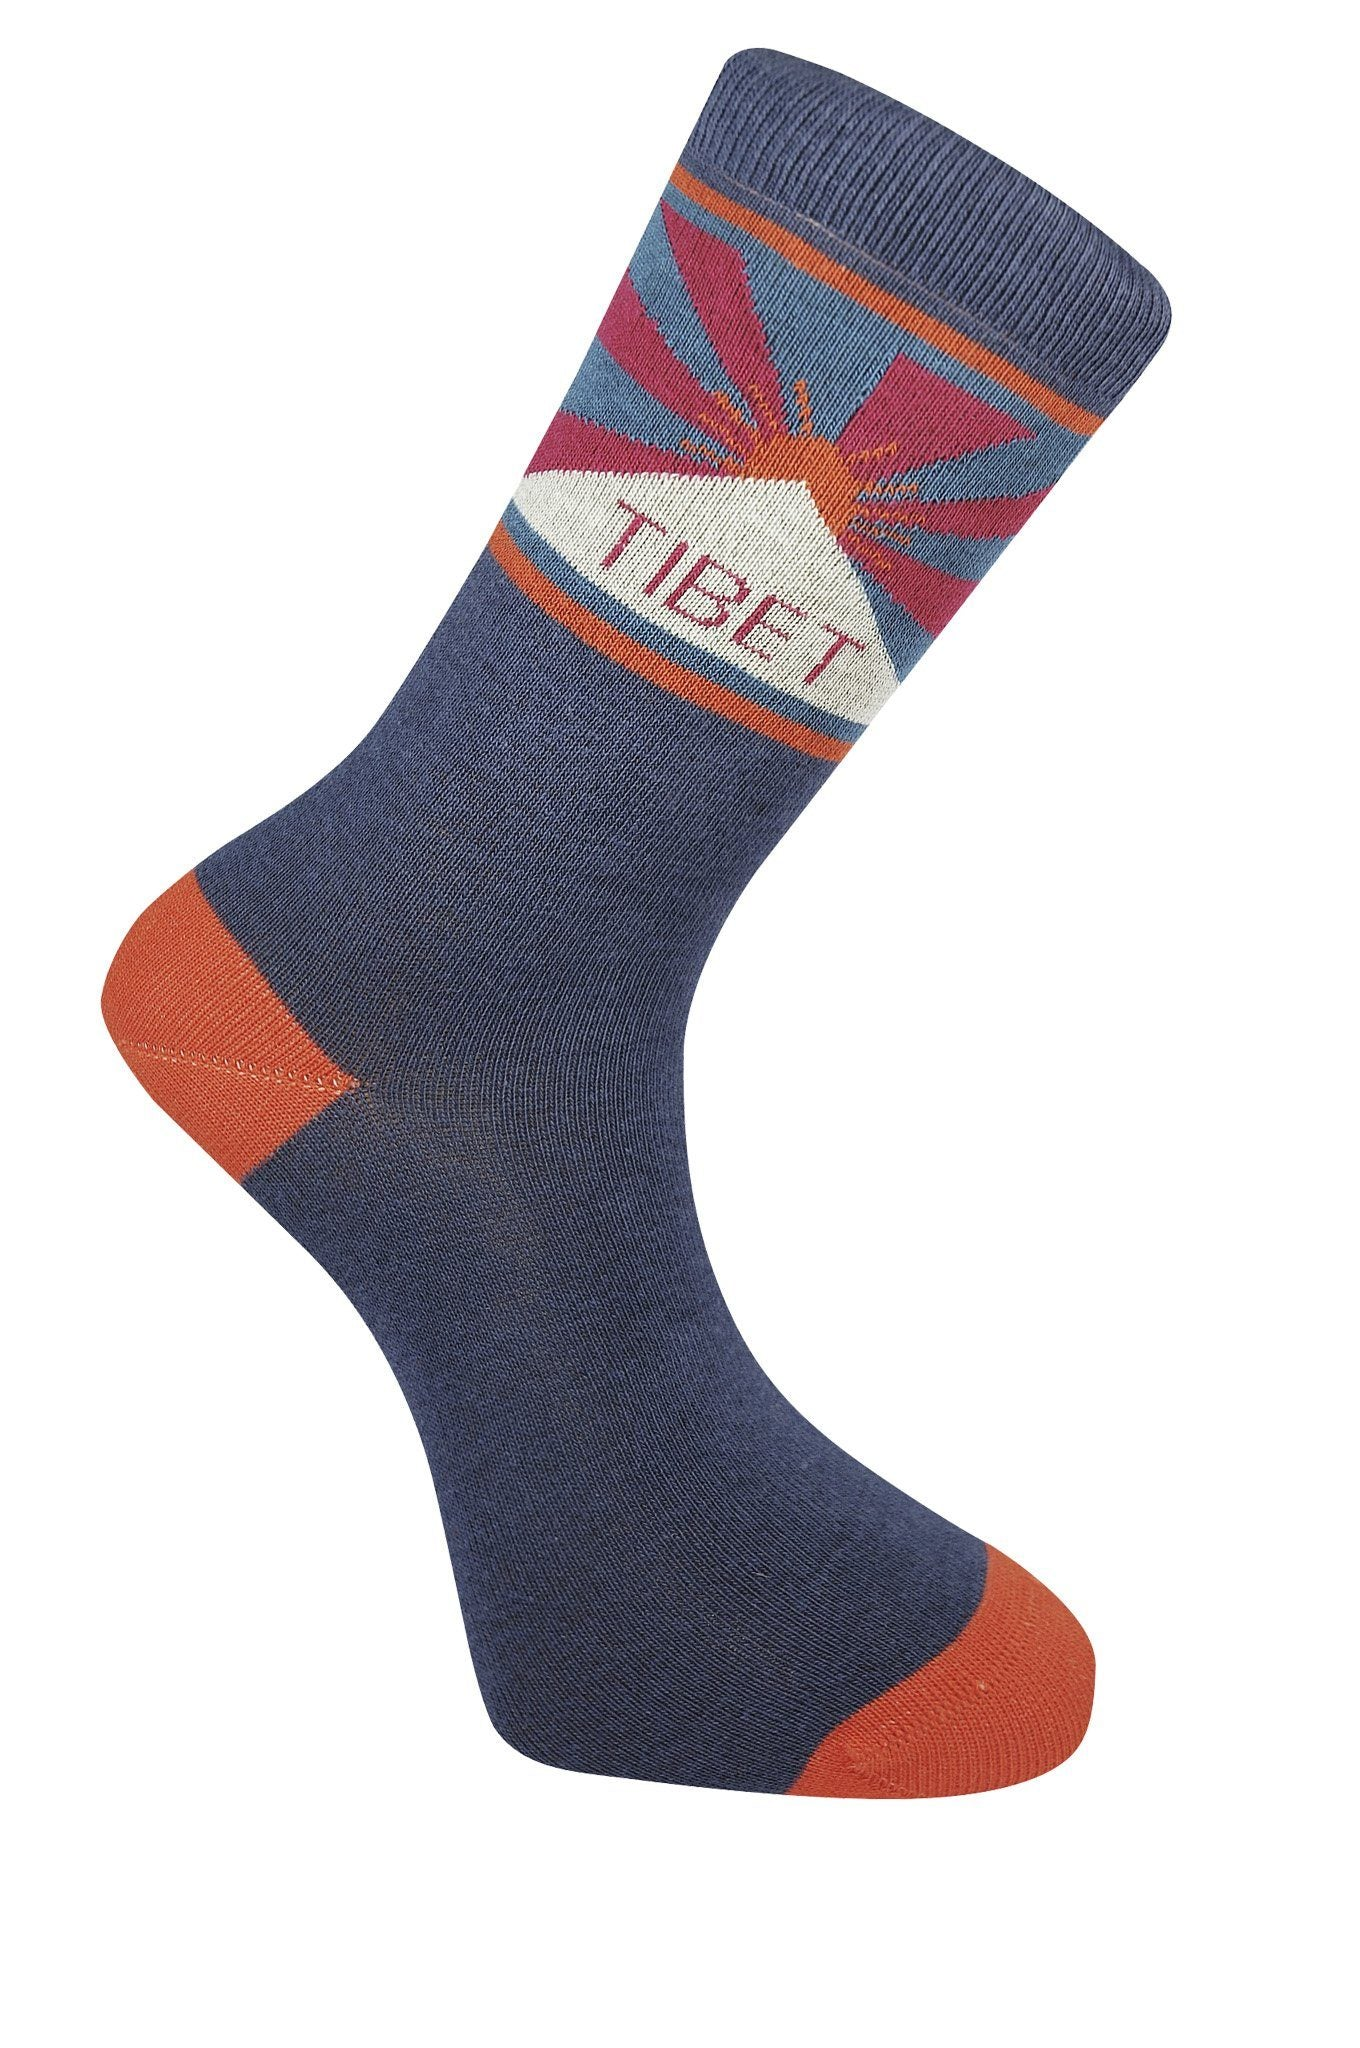 TIBET Ink Organic Cotton Socks - Komodo Fashion